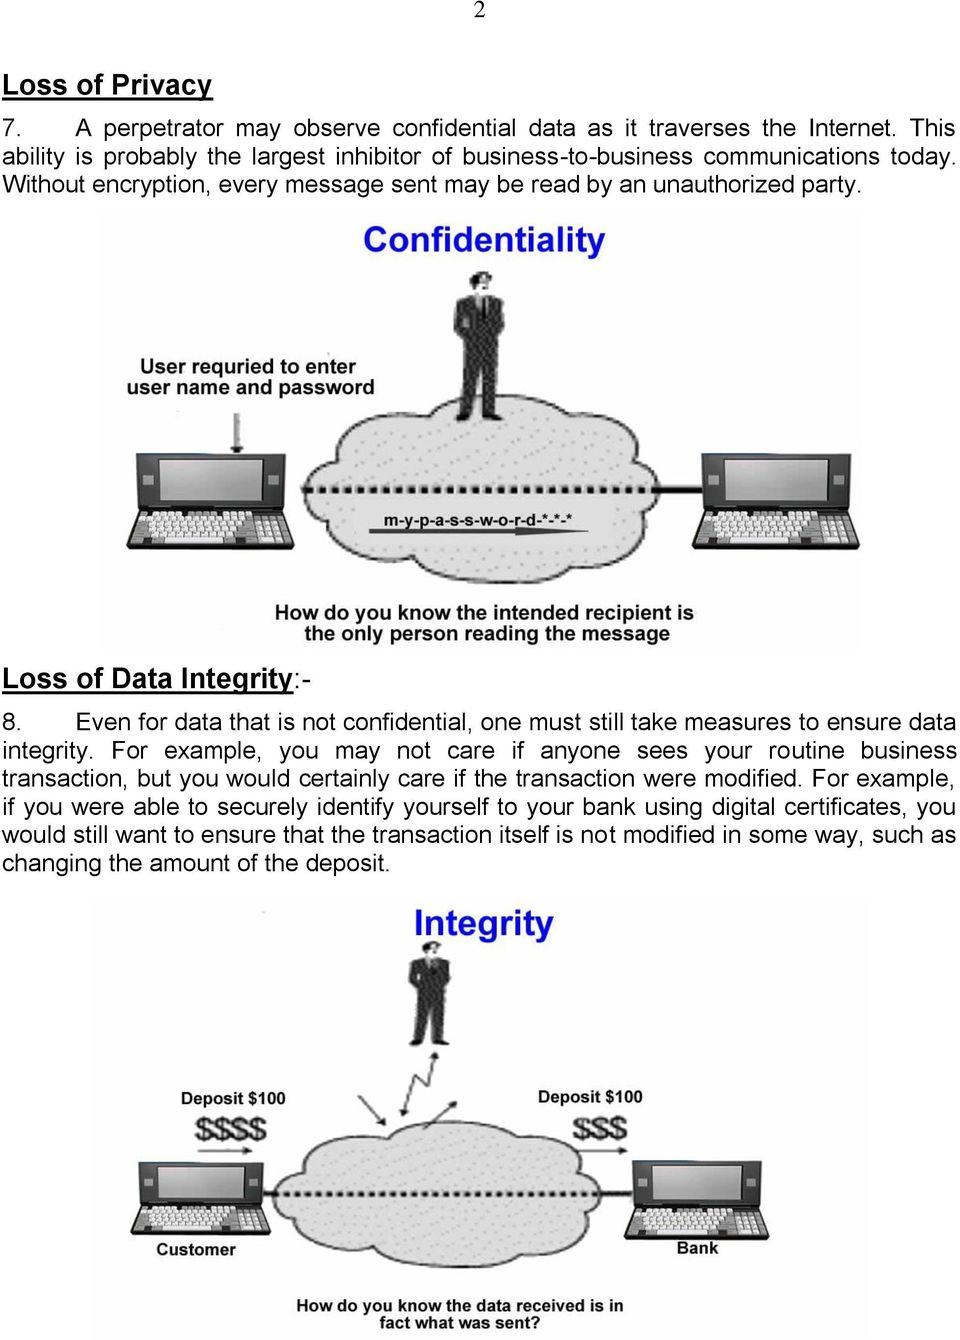 Even for data that is not confidential, one must still take measures to ensure data integrity.